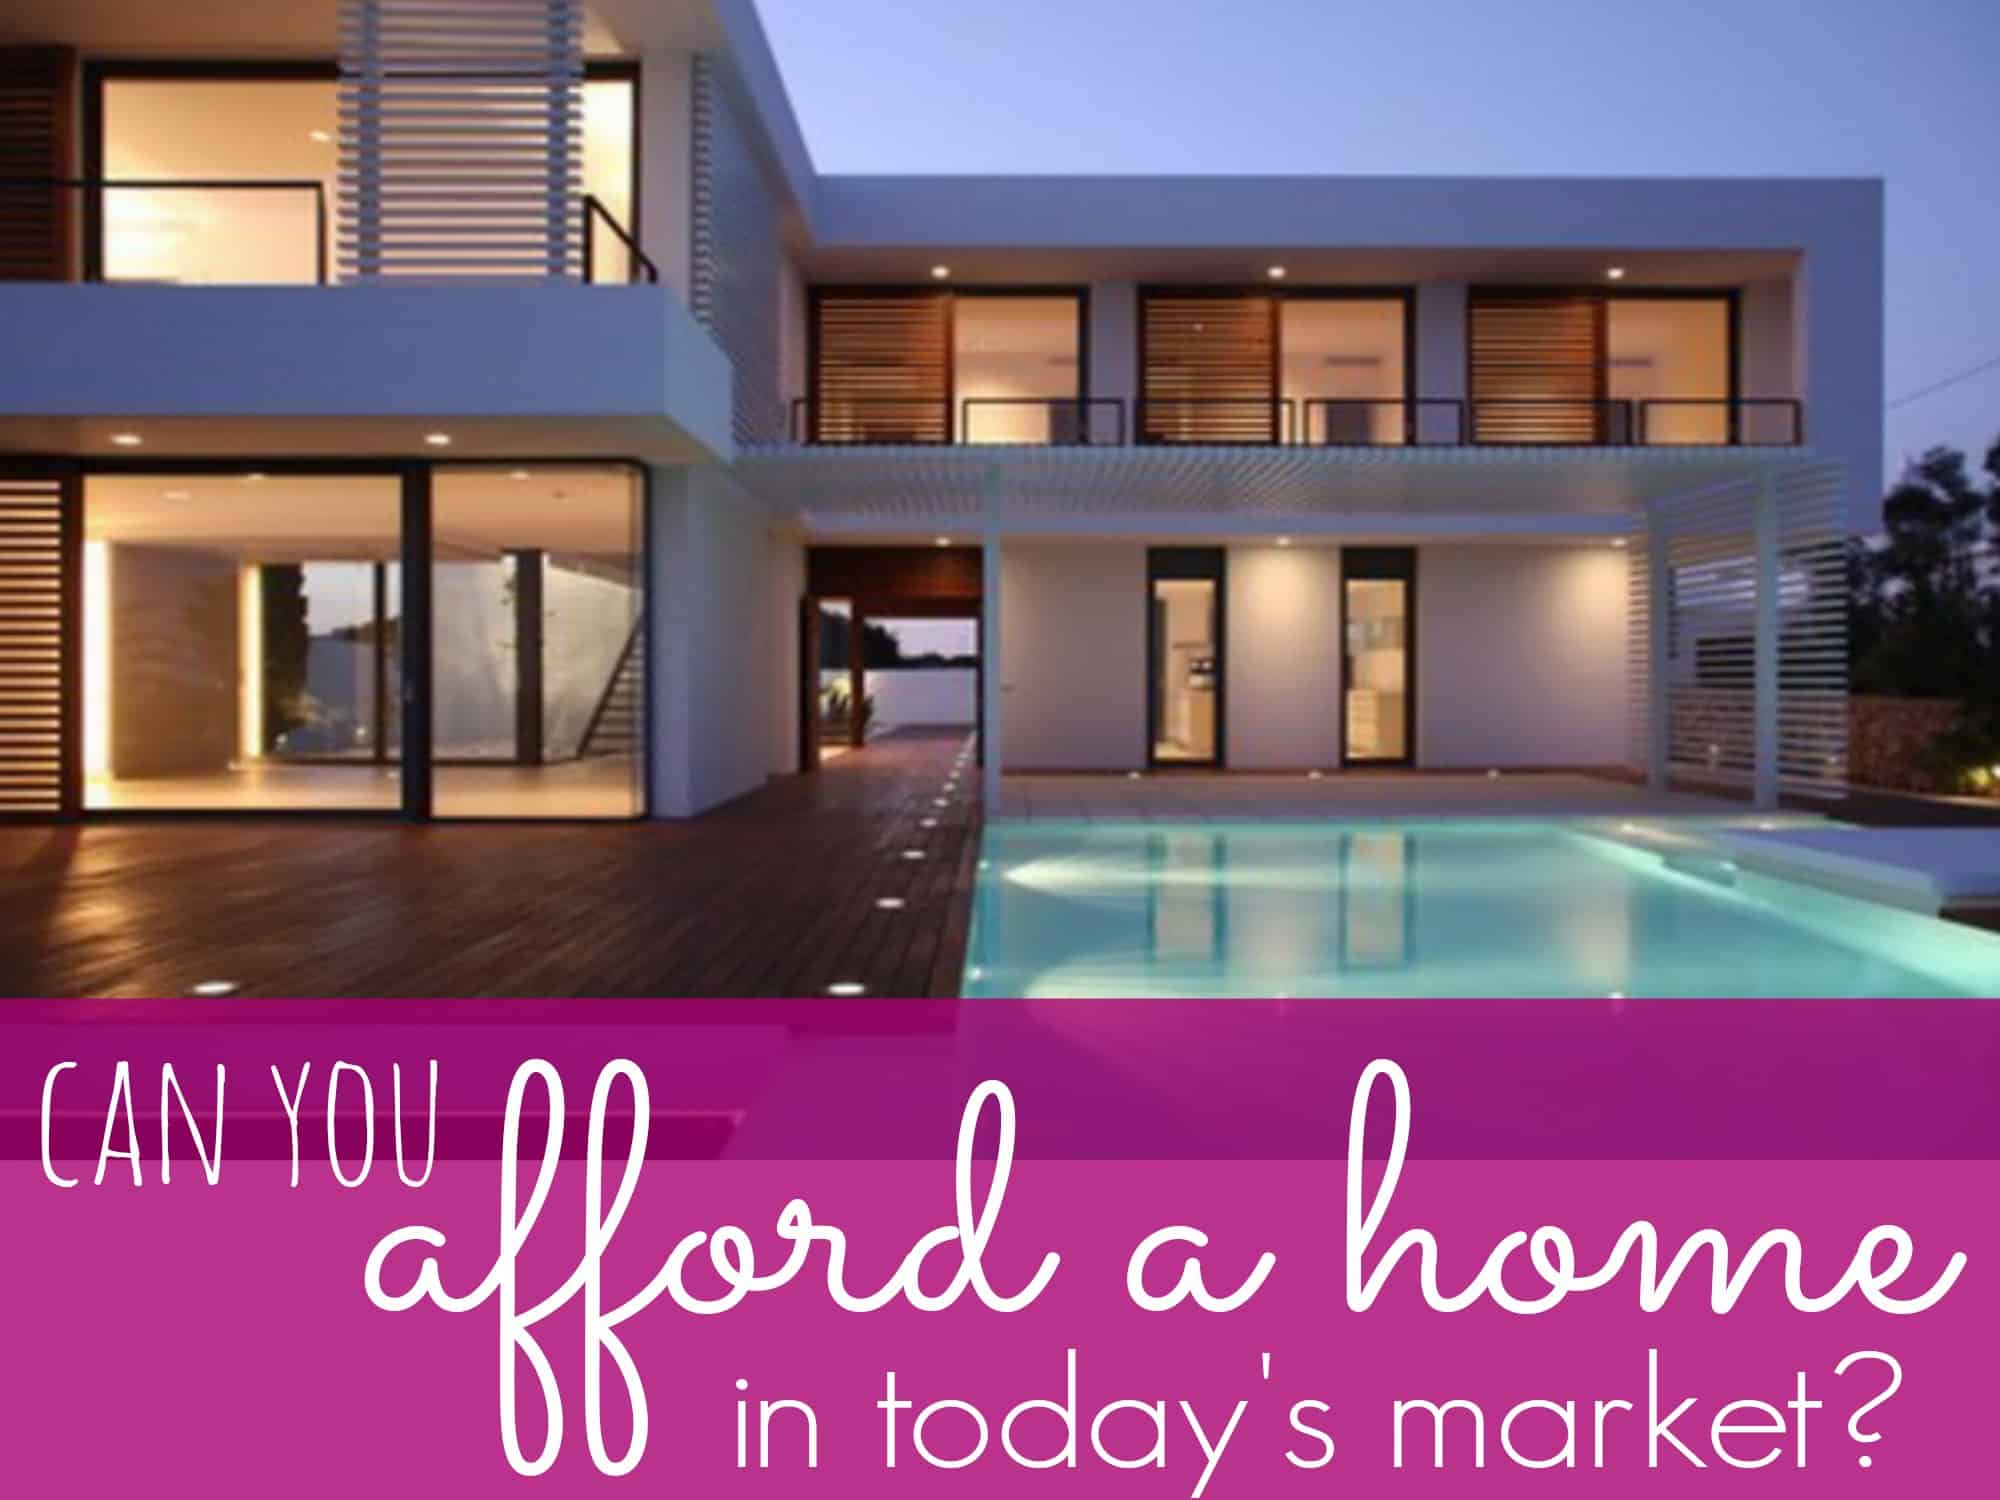 Can You Afford A Home In Today's Market?